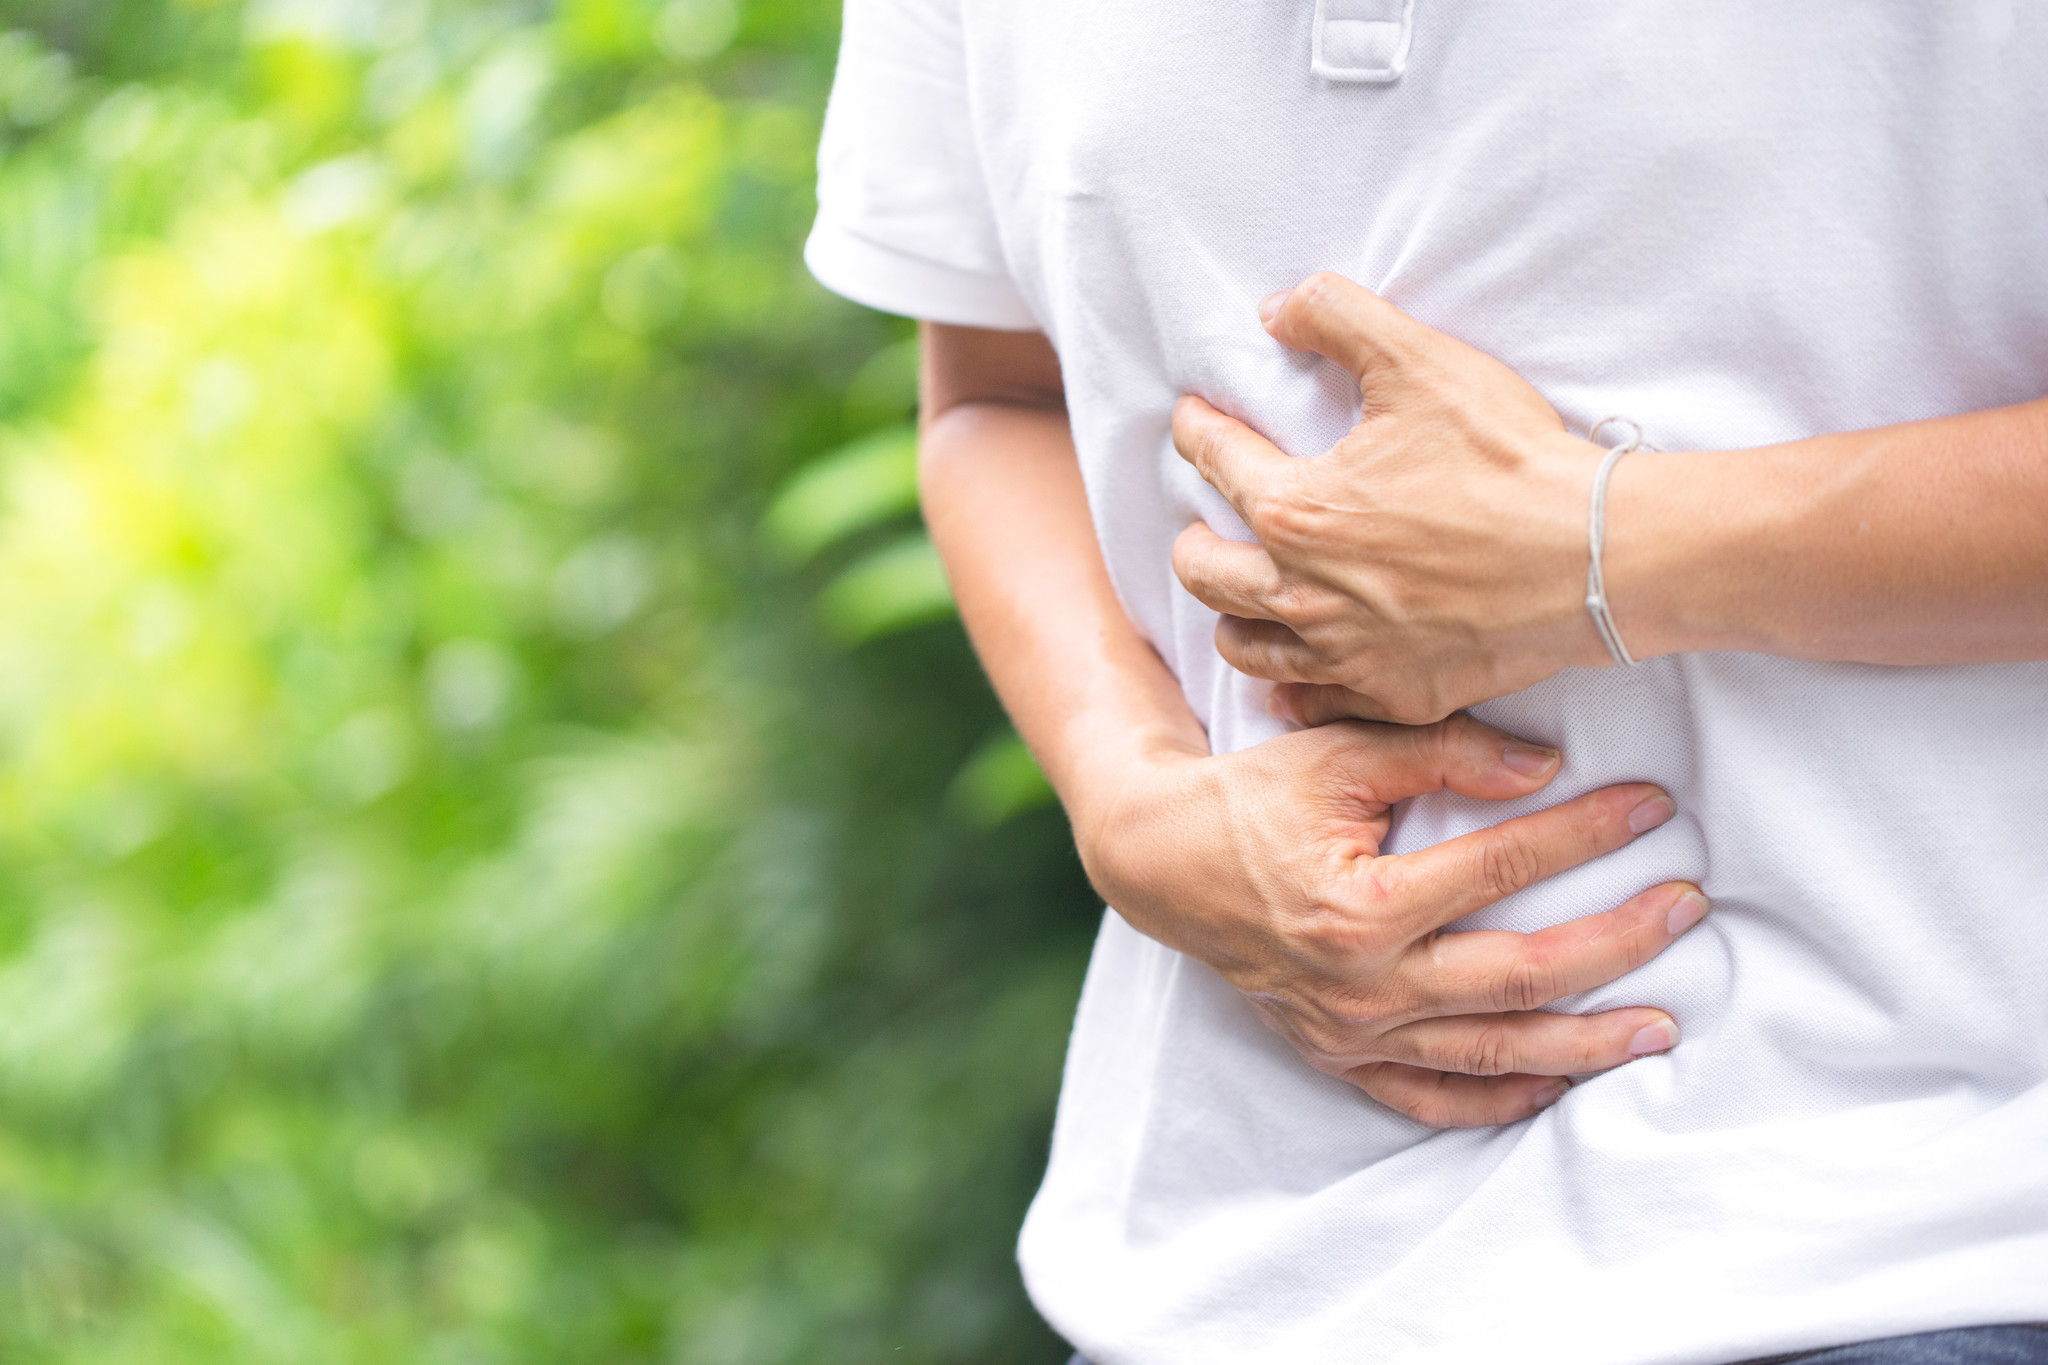 Colonoscopy May Be Linked To Increased Risk Of